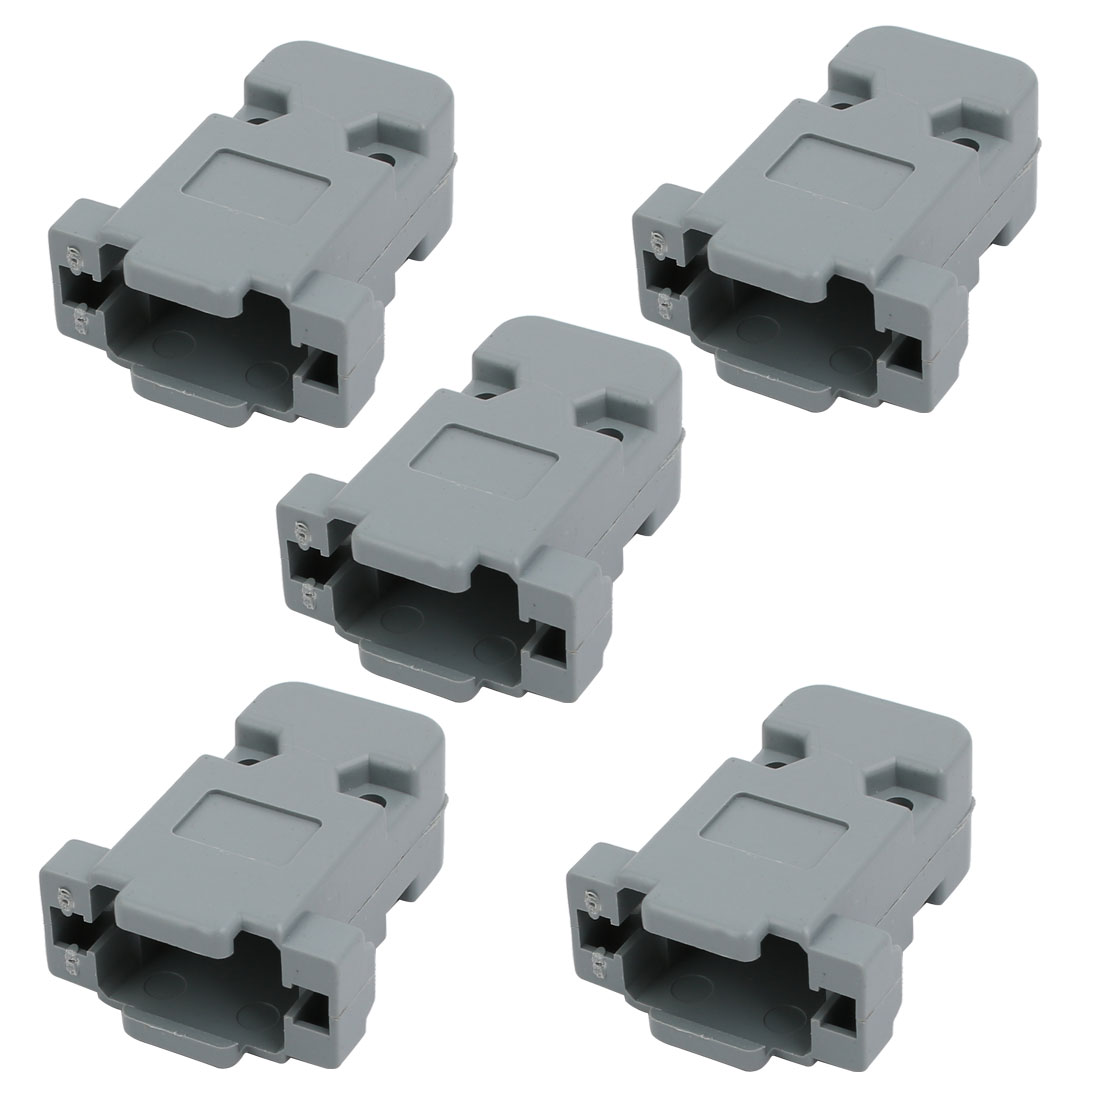 5 Pcs Serial Port D-Sub DB9 Connector Kit Protection Hoods Shell w Screws